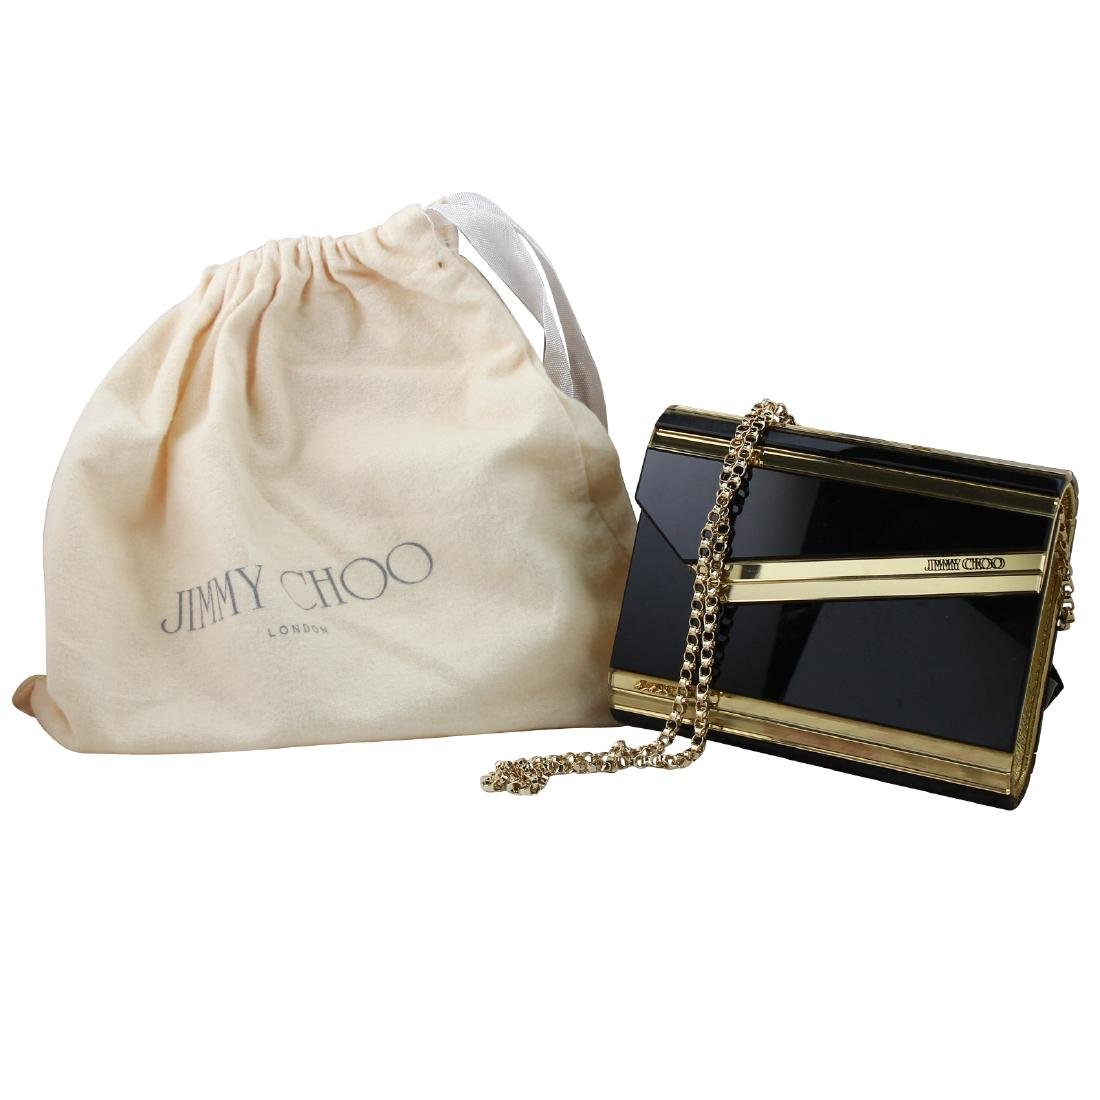 NEW Jimmy Choo Candy Resin Clutch in Black and Gold